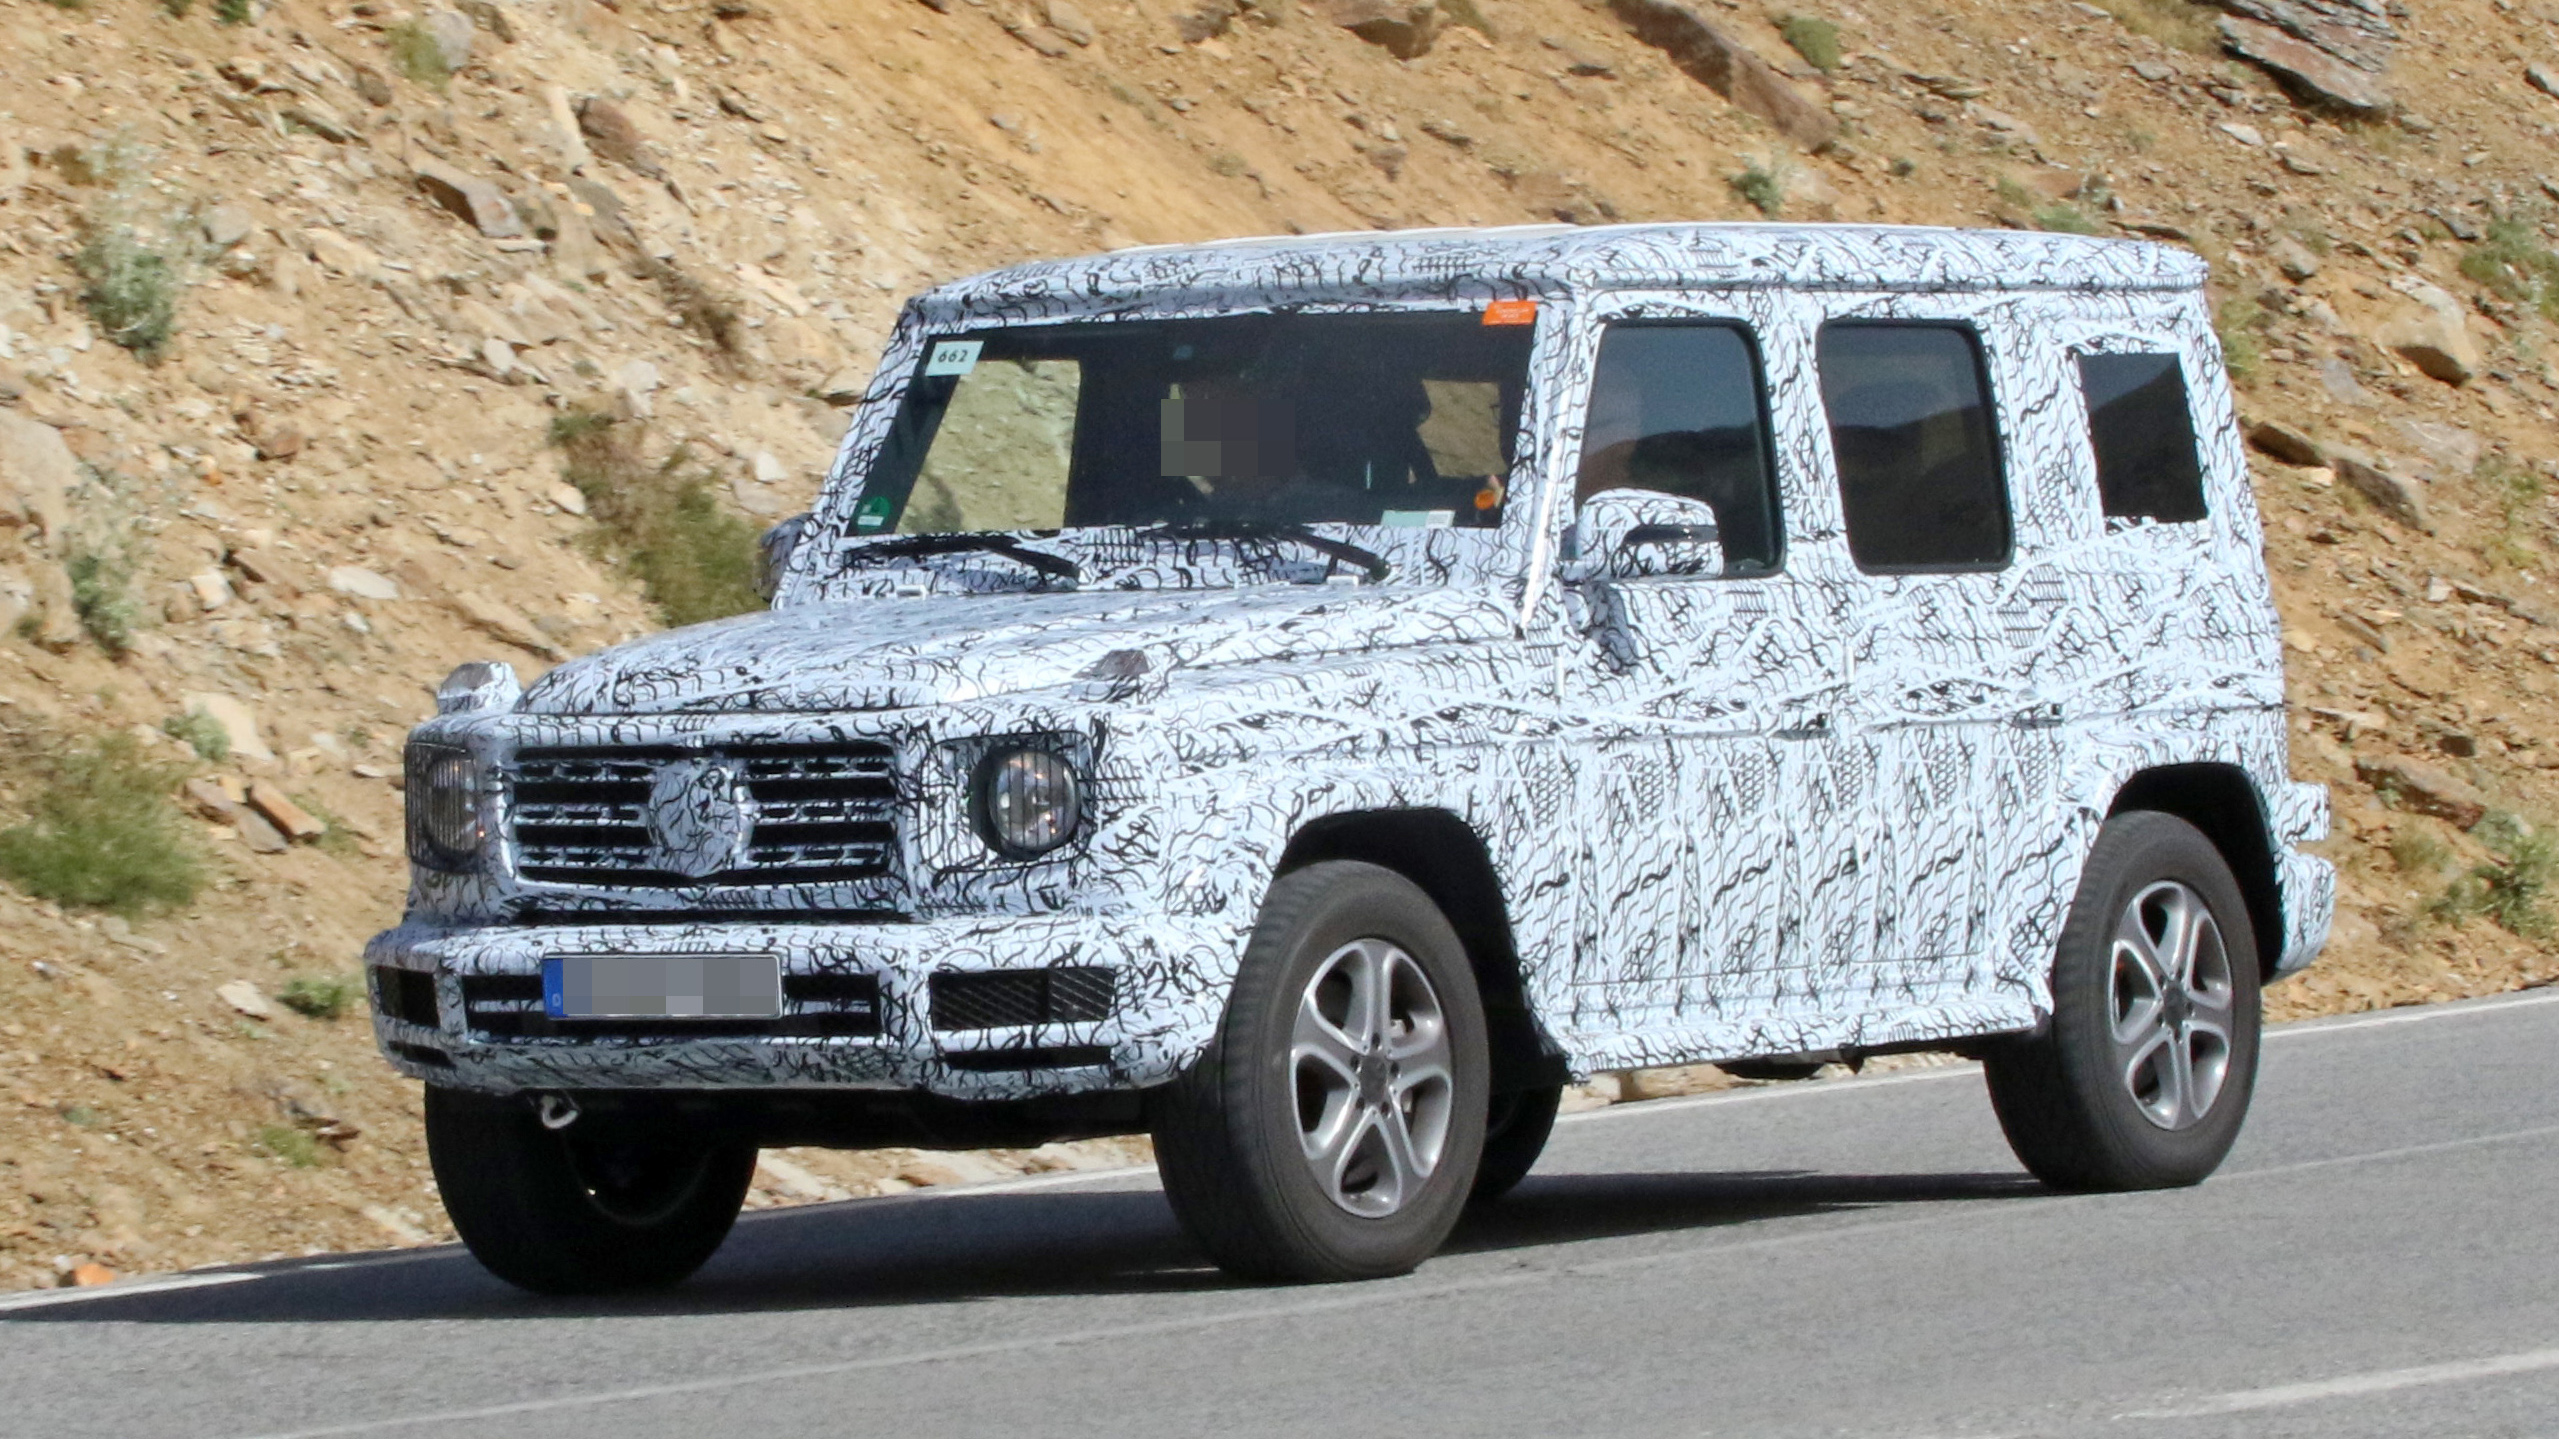 2018 mercedes benz g class review top speed for Mercedes benz g wagon review